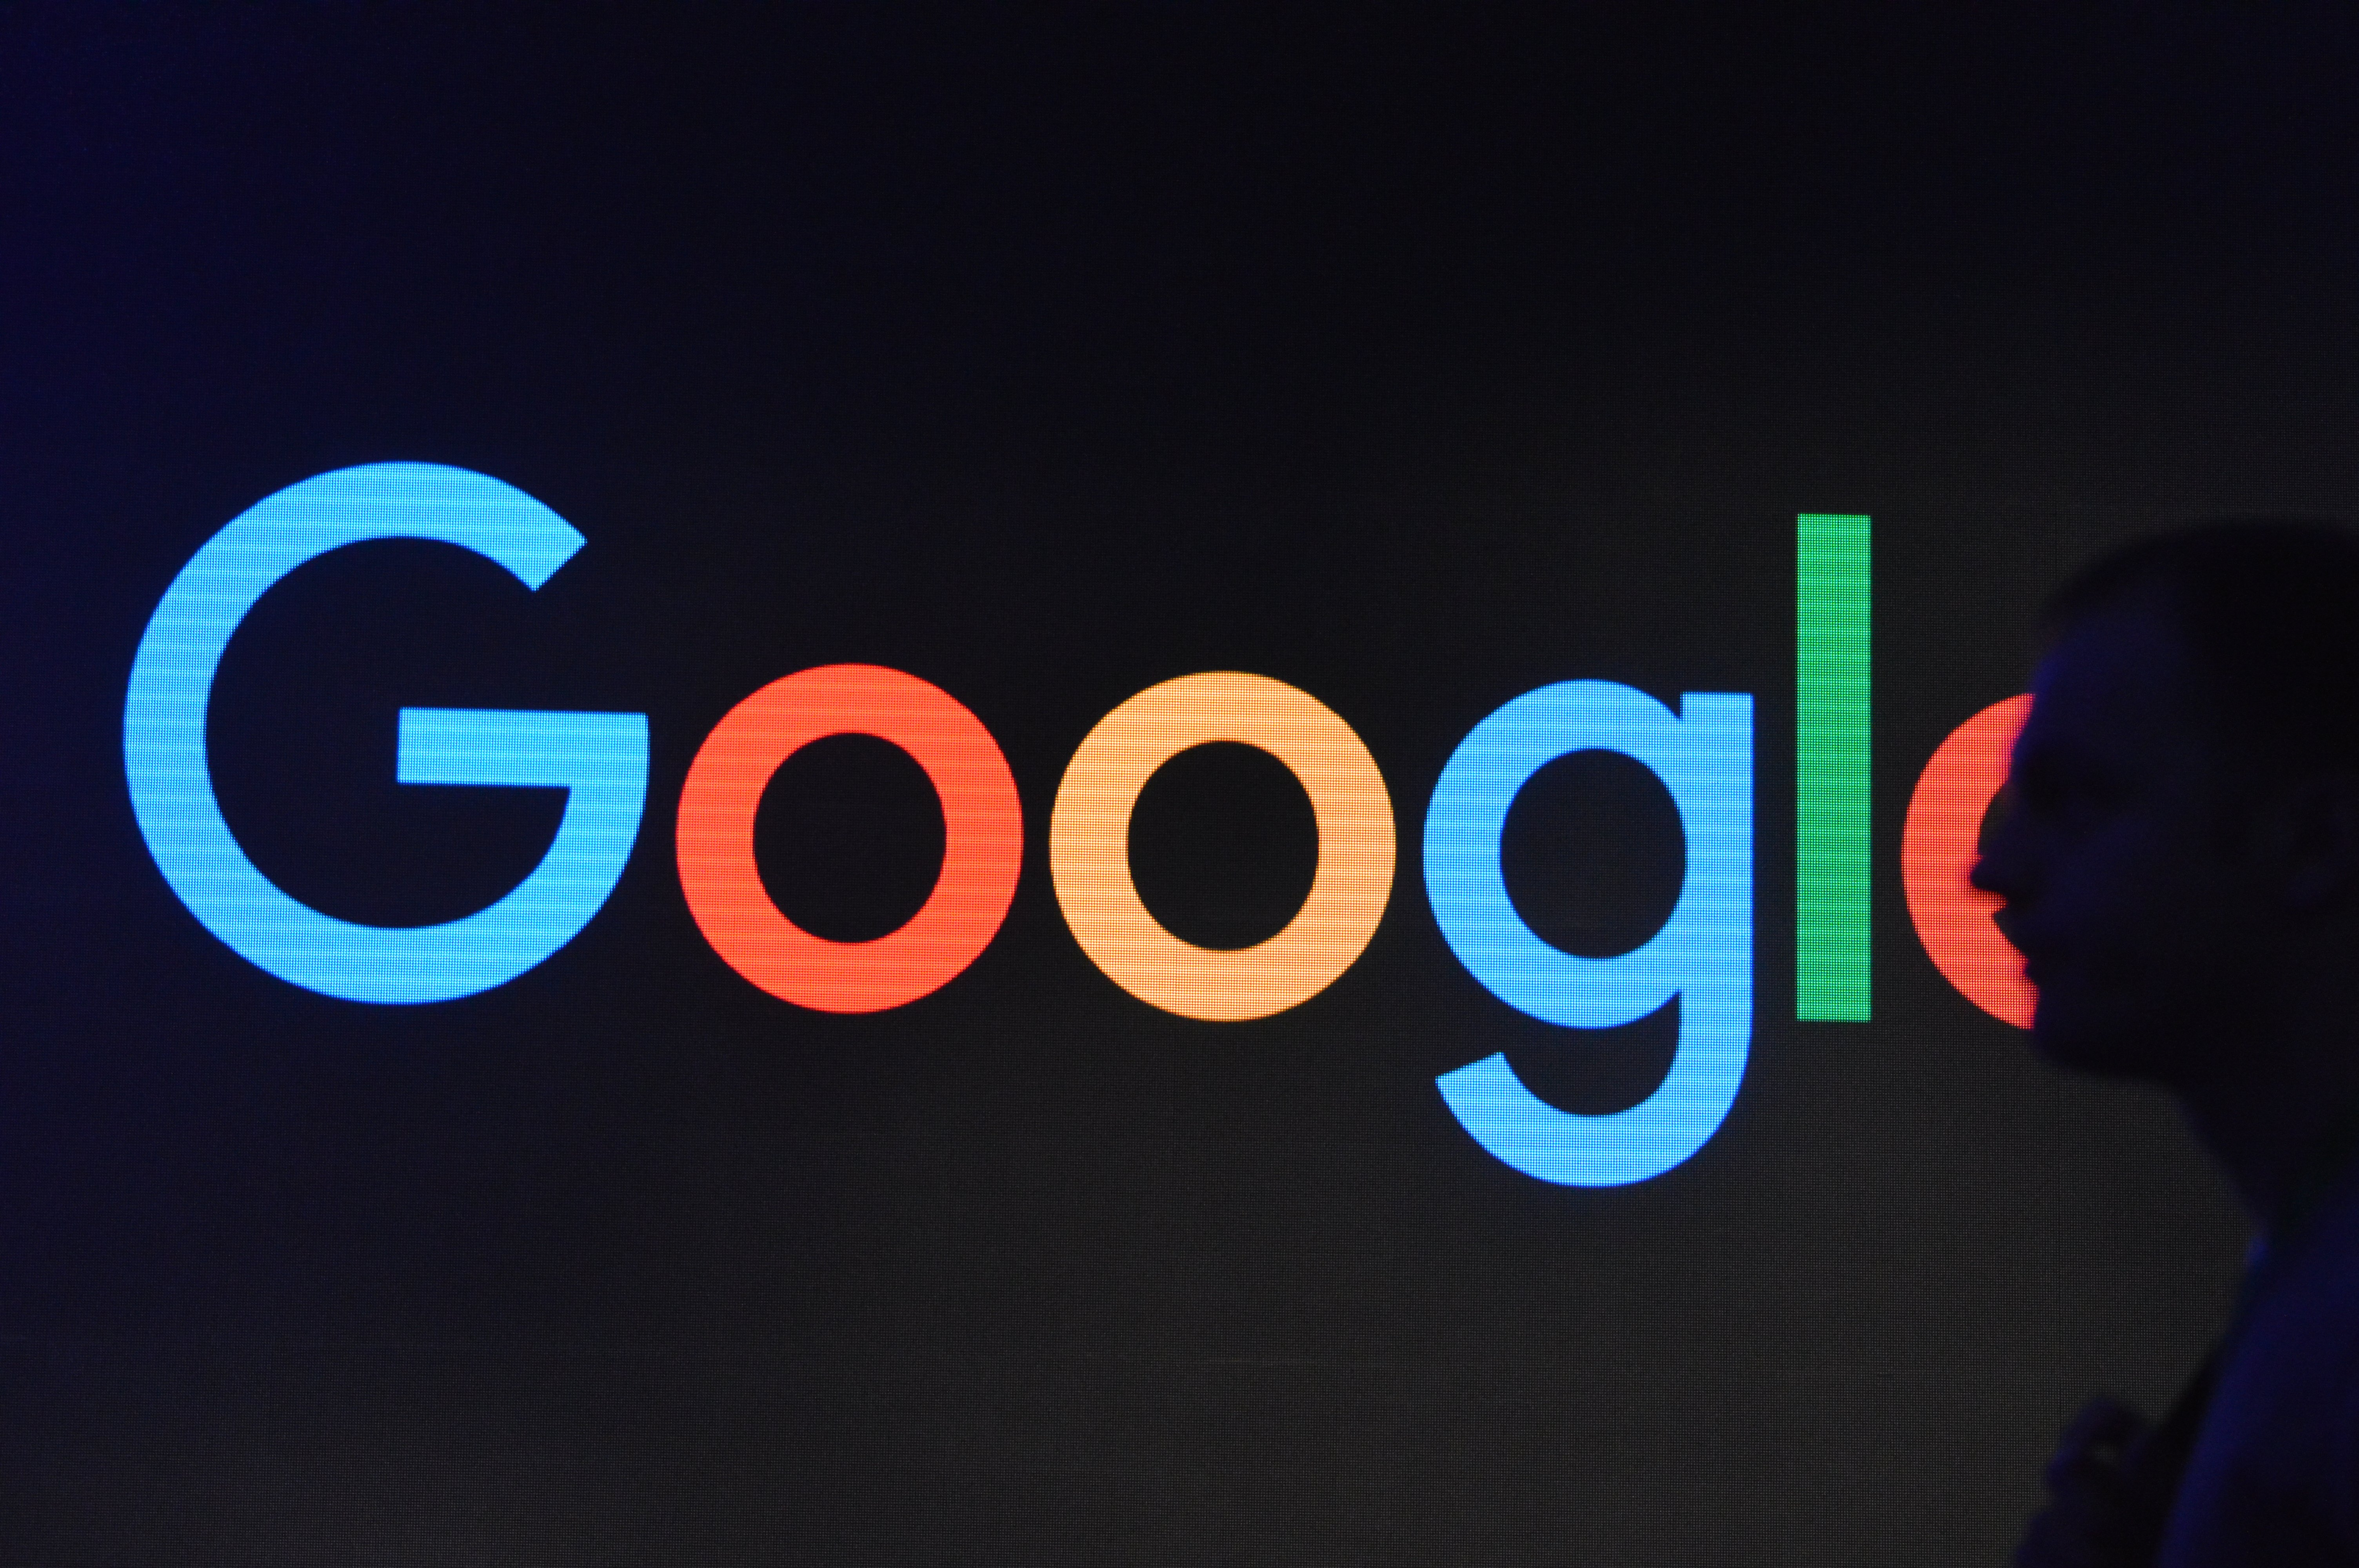 Google to purchase 413MW of solar power for new data centers